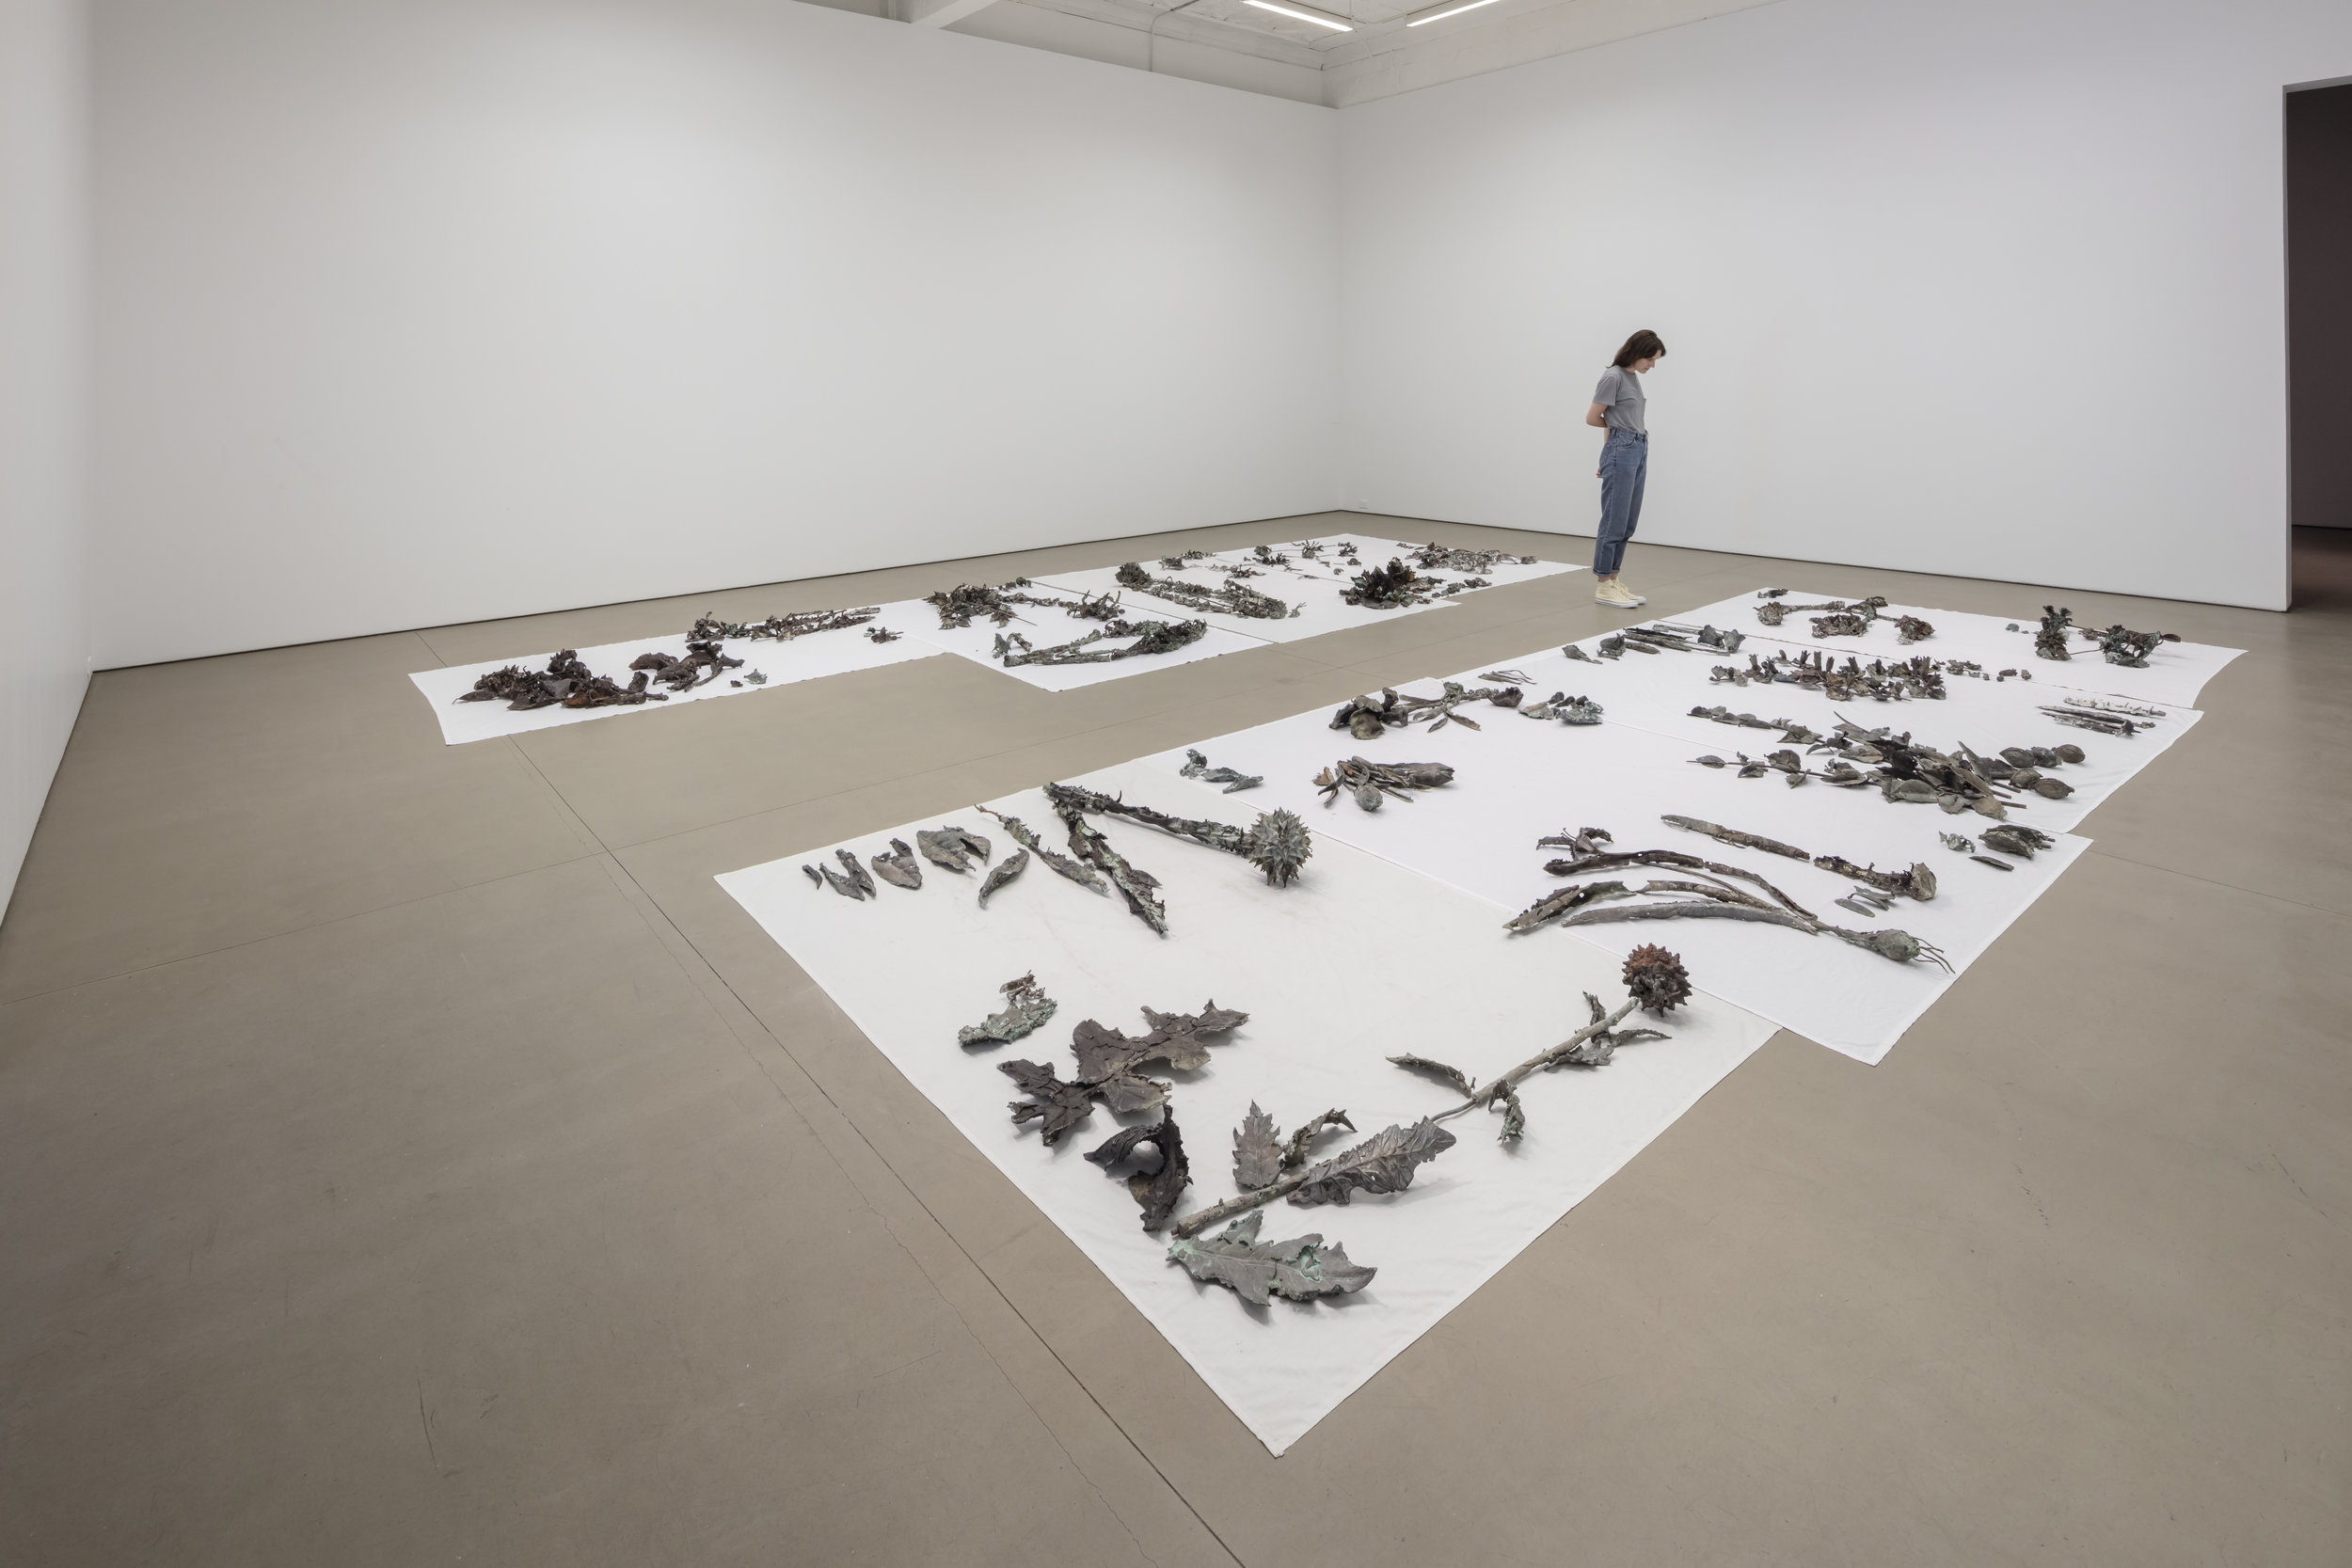 Abbas Akhavan, Study for a Monument (2013-16) Bronze on cotton sheets. Size Variable  Photo credit: Toni Hafkenscheid Courtesy of Mercer Union, Abraaj Group Art Prize and the Family Servais Collection